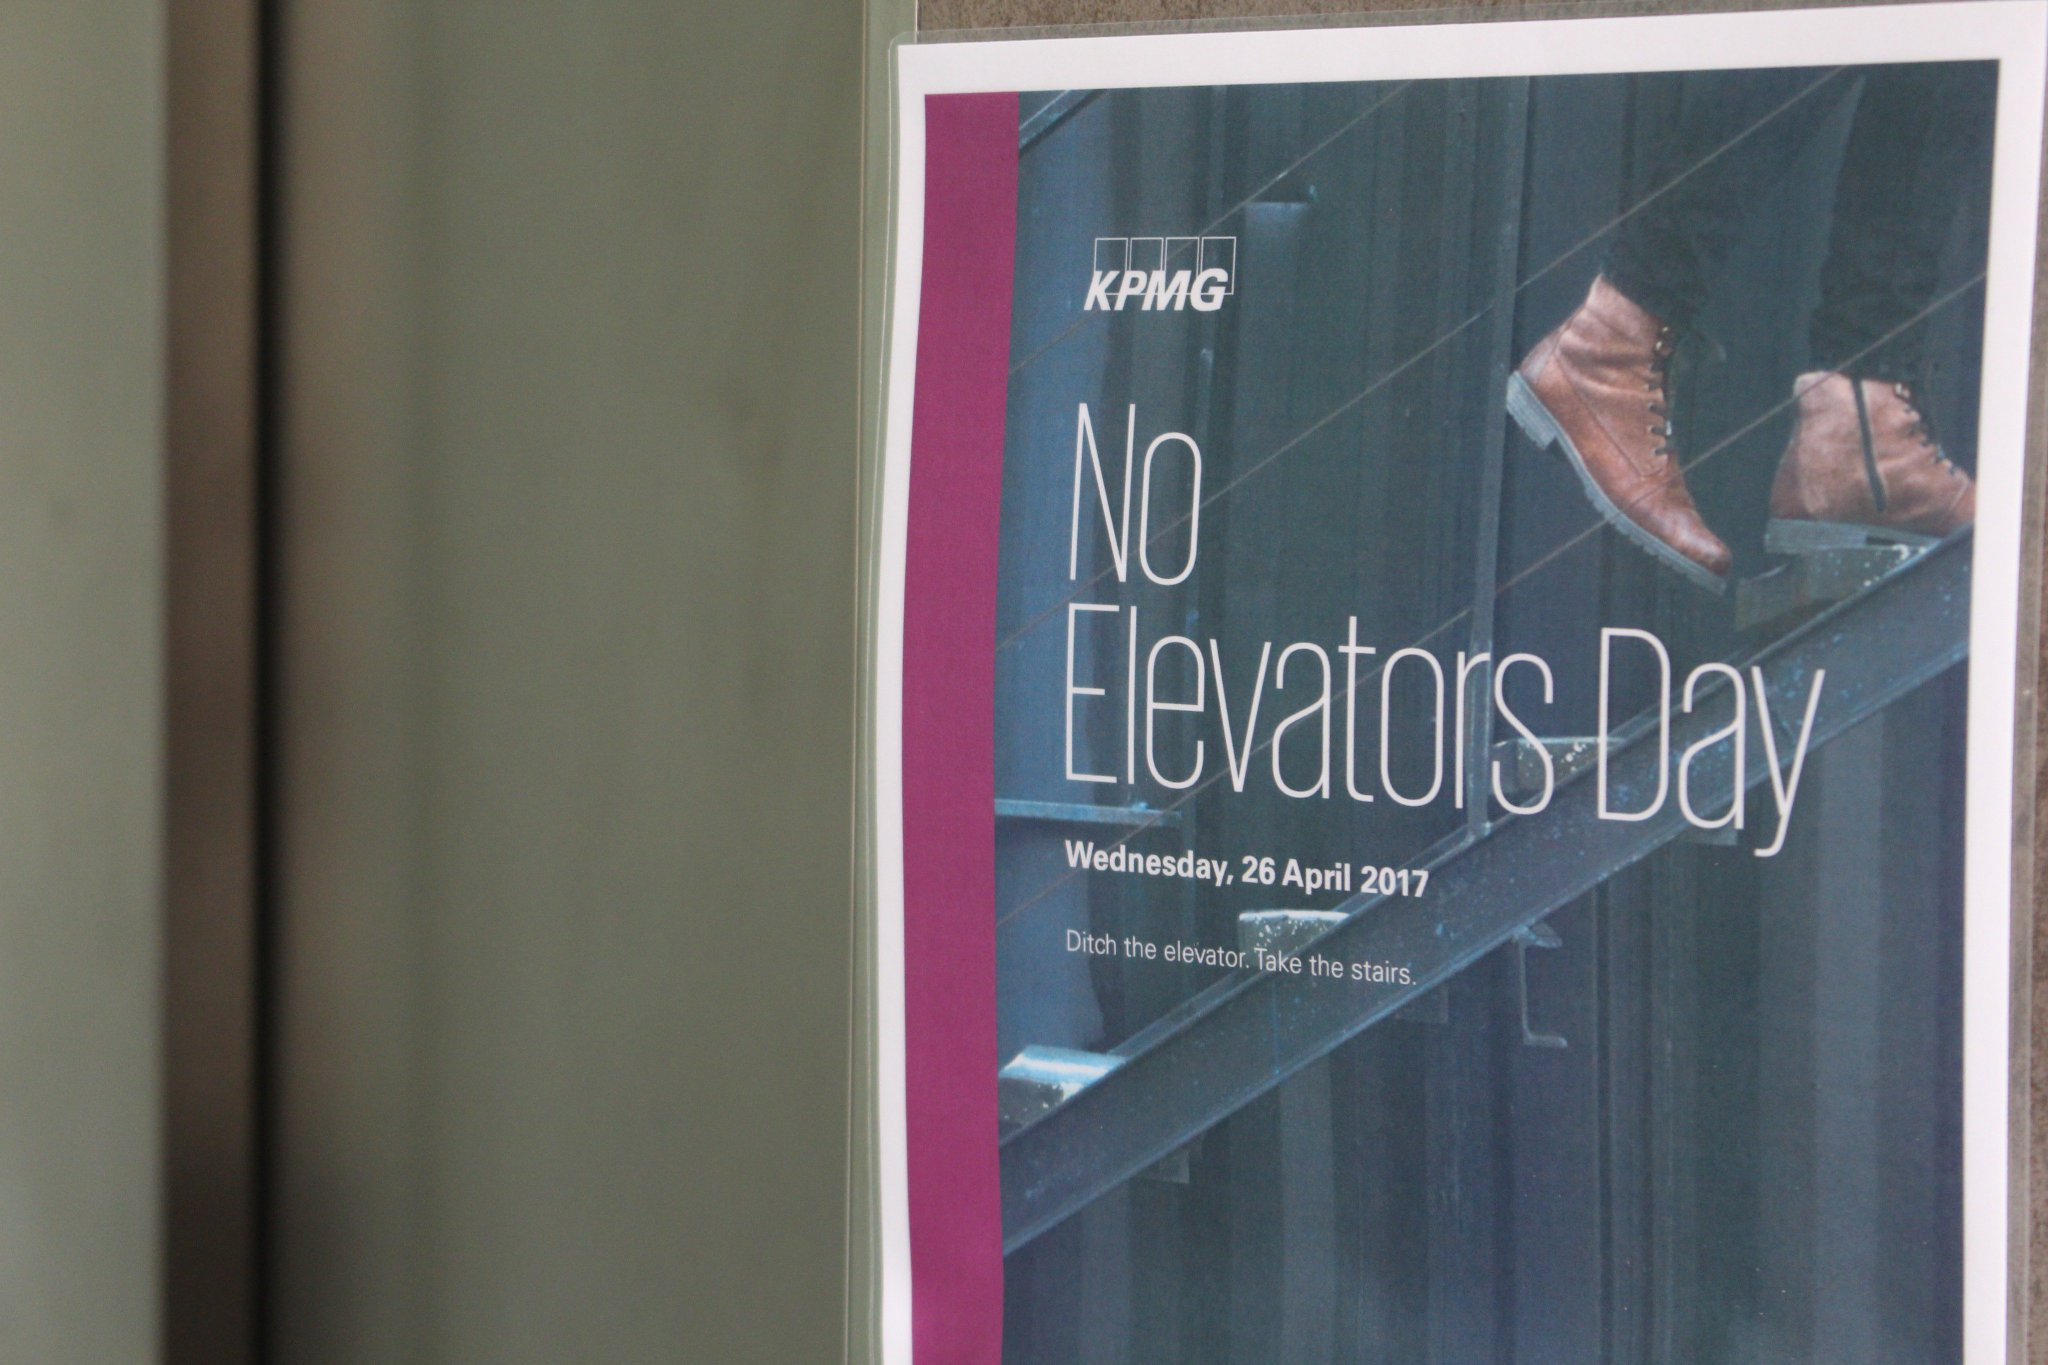 Today we encouraged our clients and employees to ditch the #lift and take the #stairs for #NoElevatorsDay! #CSR #exercise #steps @NowWeMove https://t.co/gjTiY5EoDK